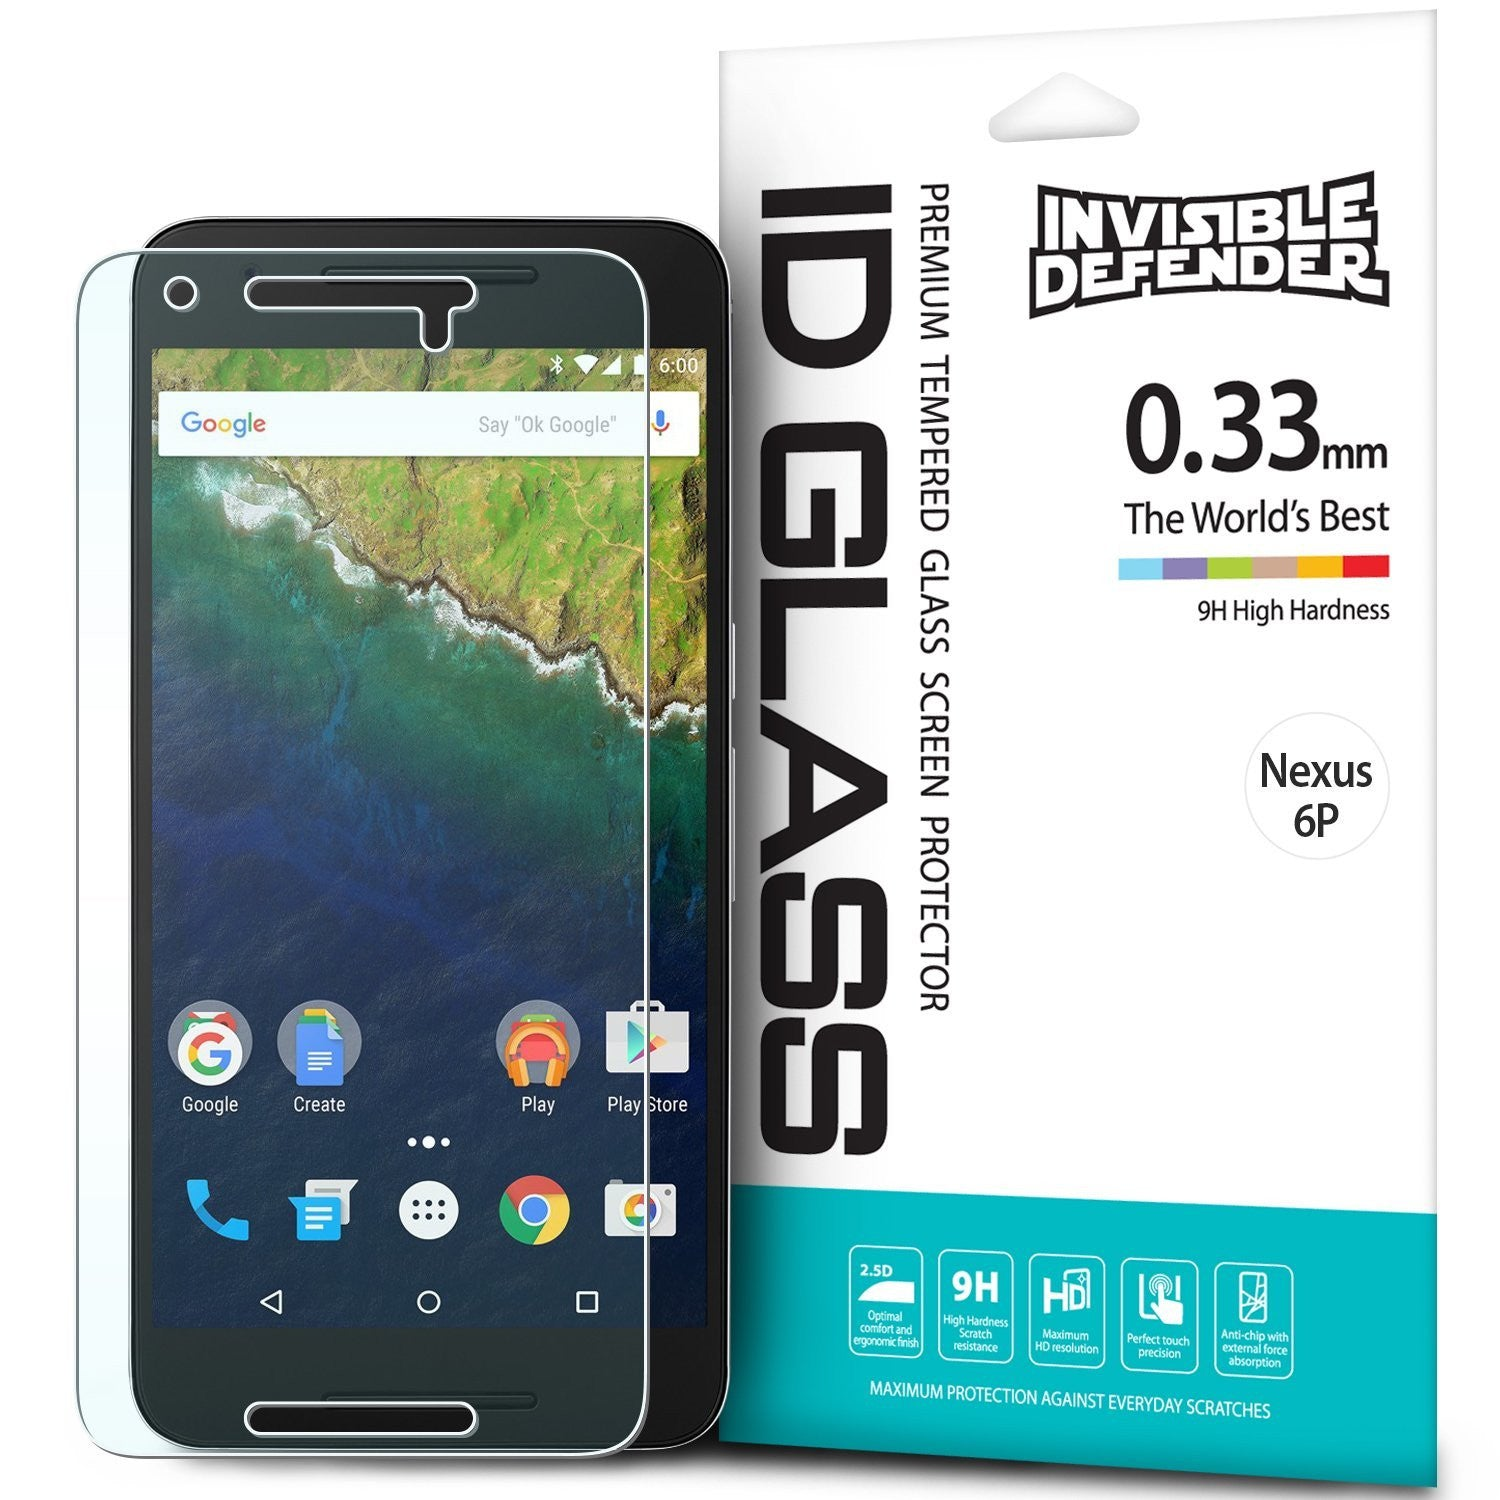 Nexus 6P, Ringke® [INVISIBLE DEFENDER] [0.33mm] Tempered Glass Screen Protector